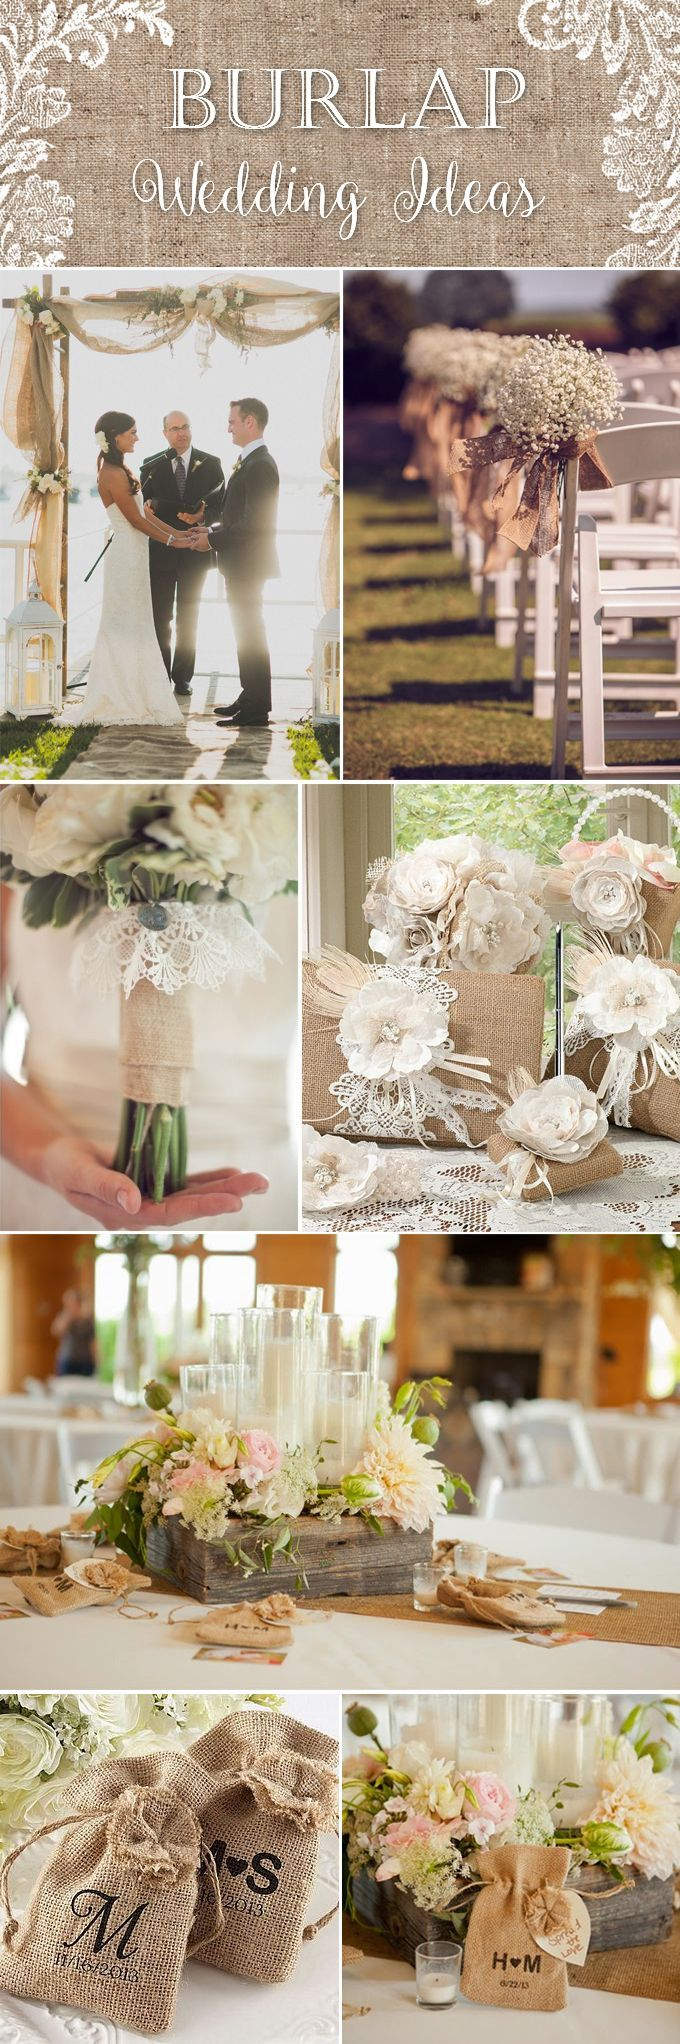 ChicRustic Burlap and Lace Wedding Ideas  Burlap weddings and